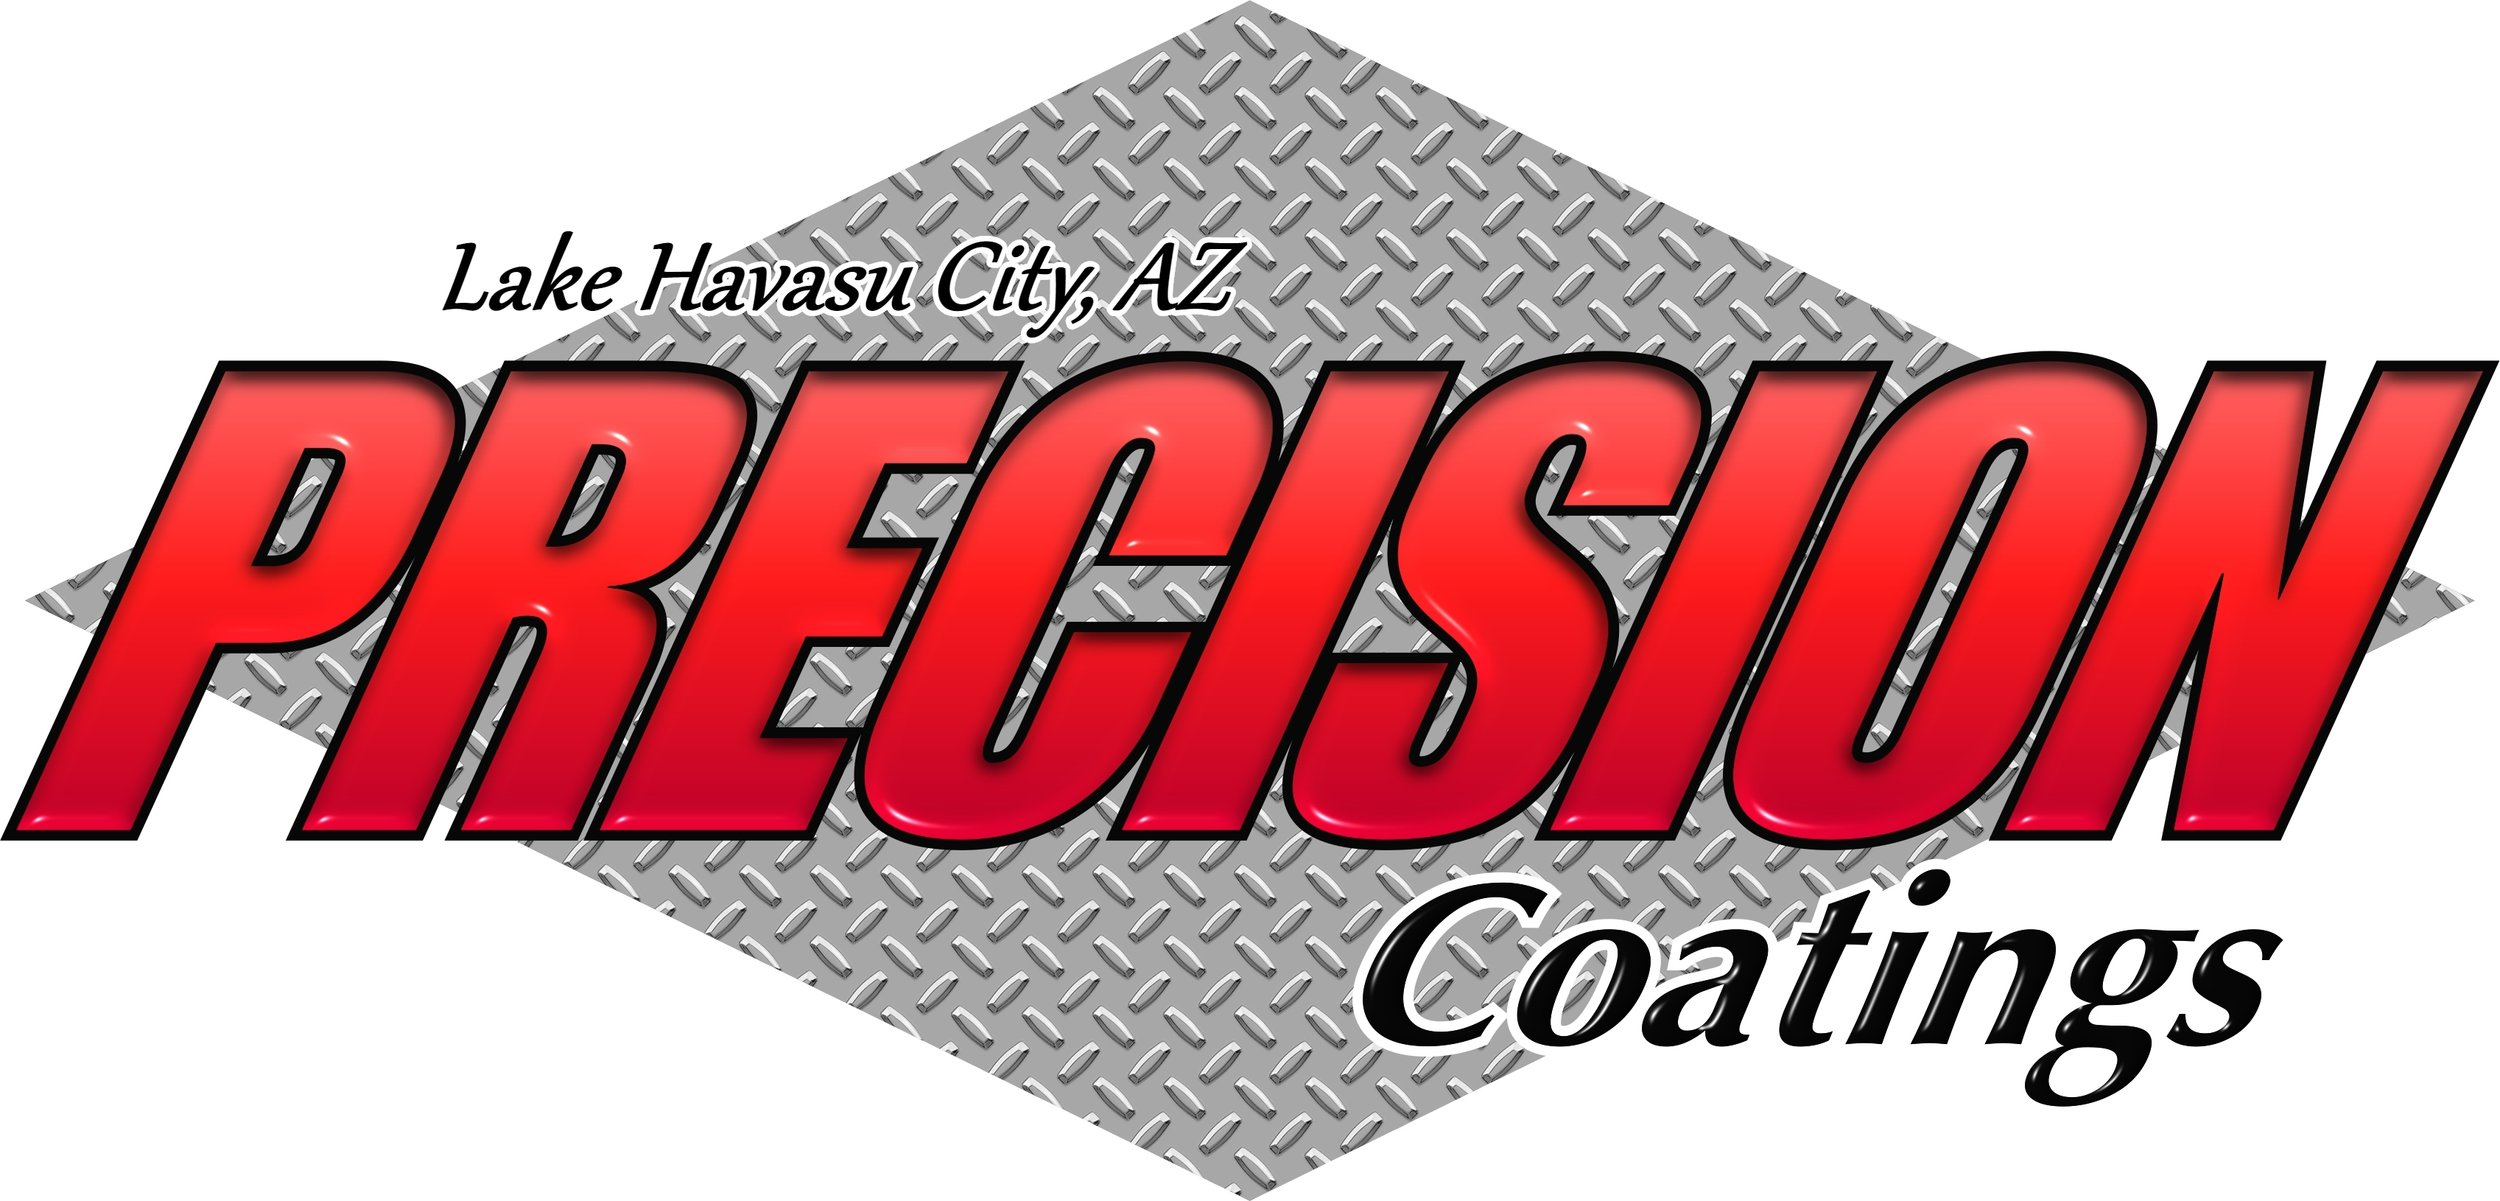 All Powder Coating done by Precision Coatings in Lake Havasu City - 928.733.6040